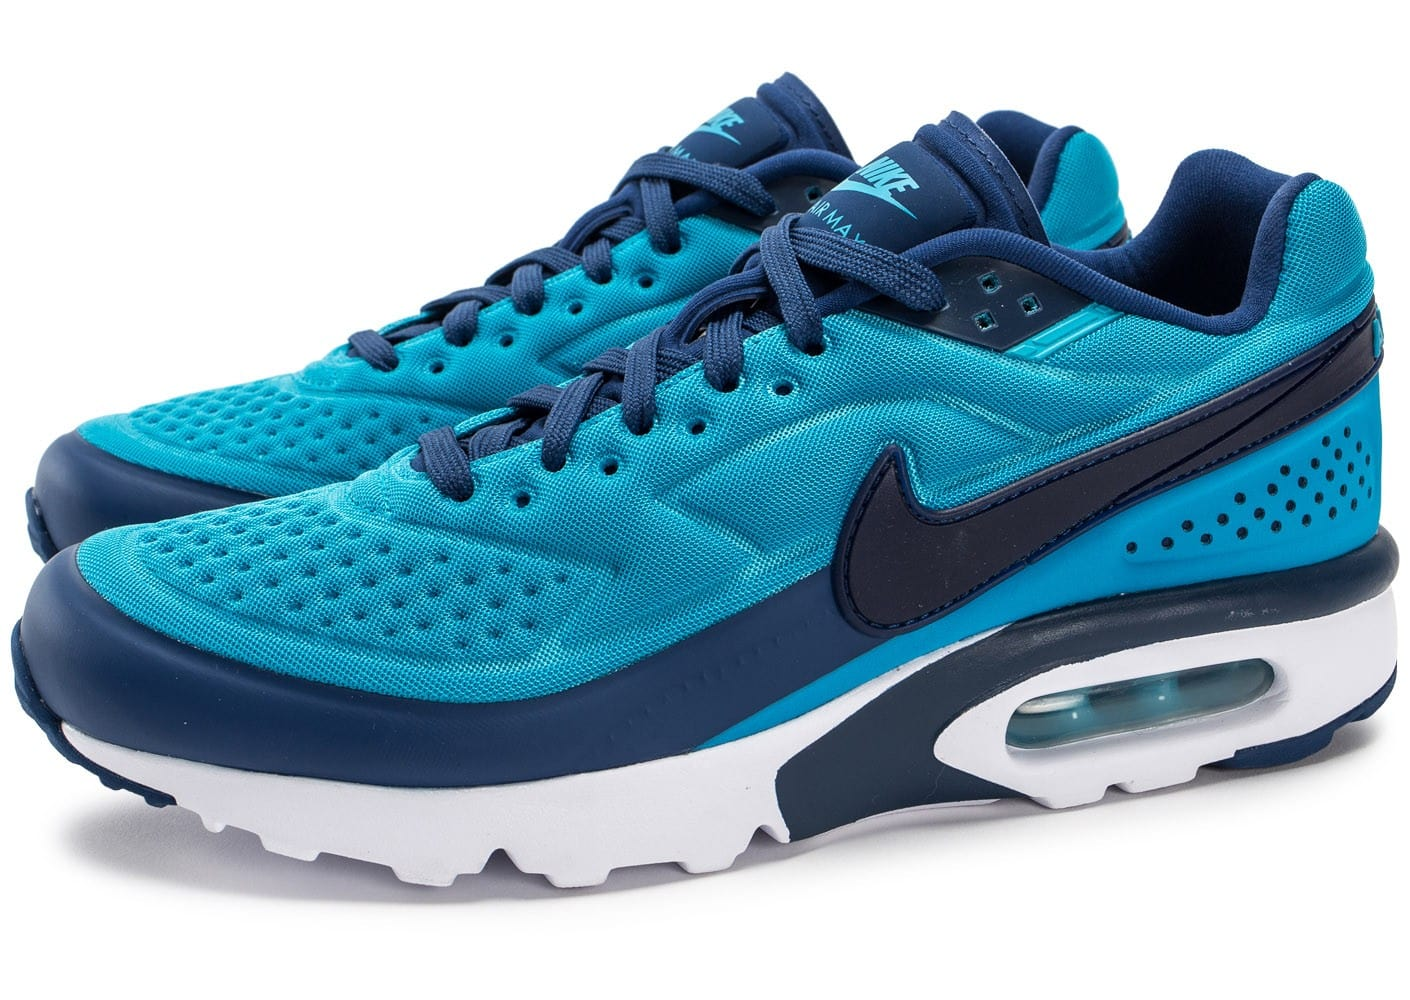 nike air max bw ultra bleu chaussures homme chausport. Black Bedroom Furniture Sets. Home Design Ideas